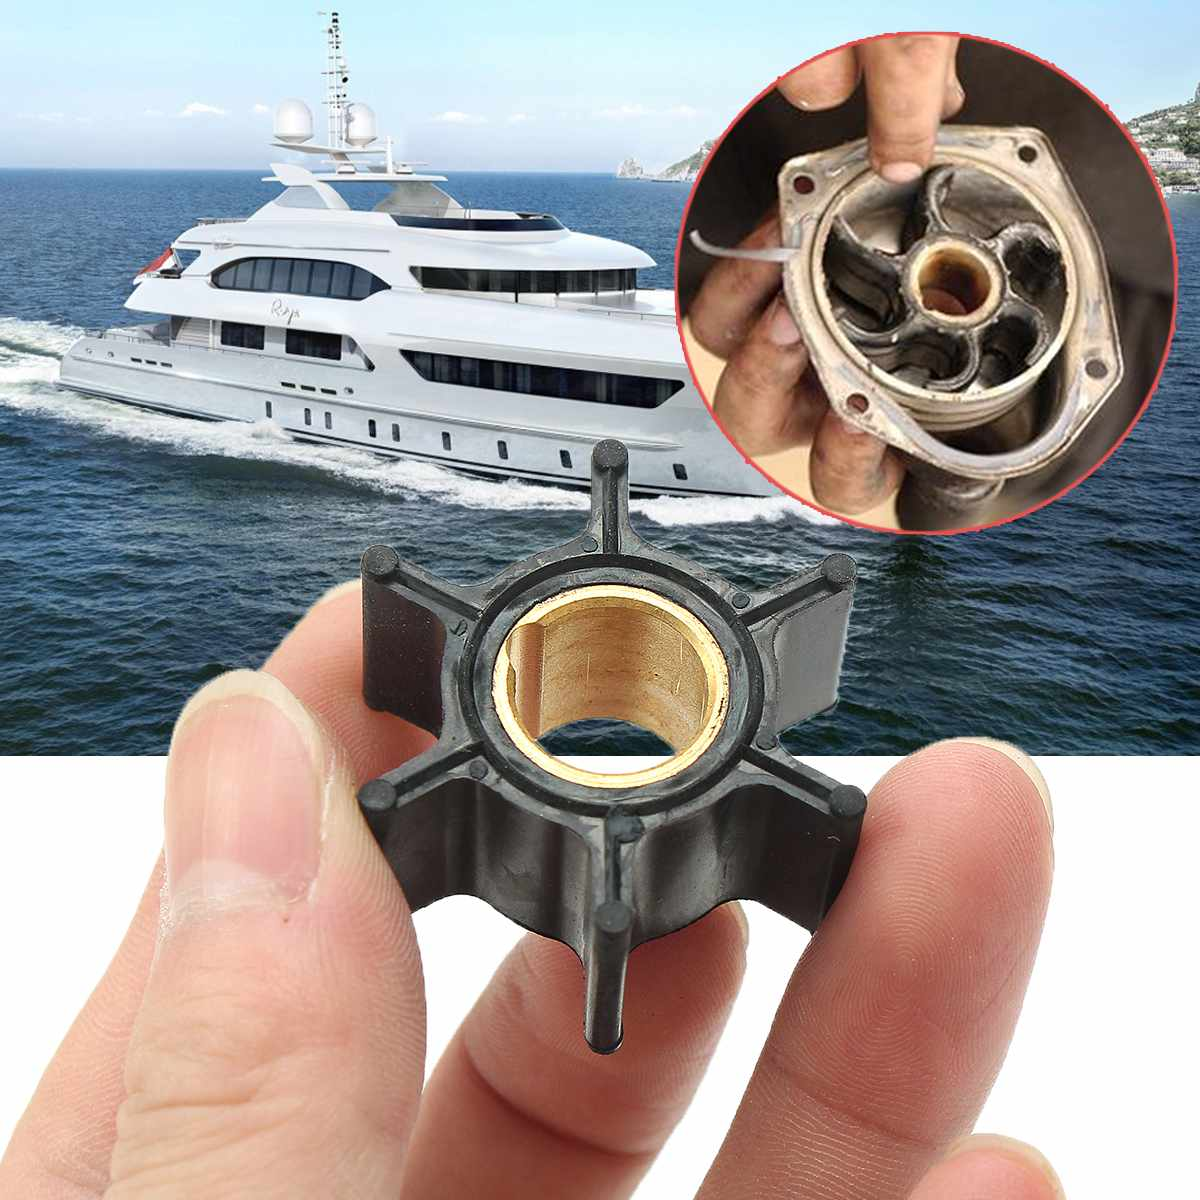 hight resolution of 386084 18 3050 500355 boat outboard motors water pump impeller for johnson evinrude 9 9 15hp outboard replacement rubber